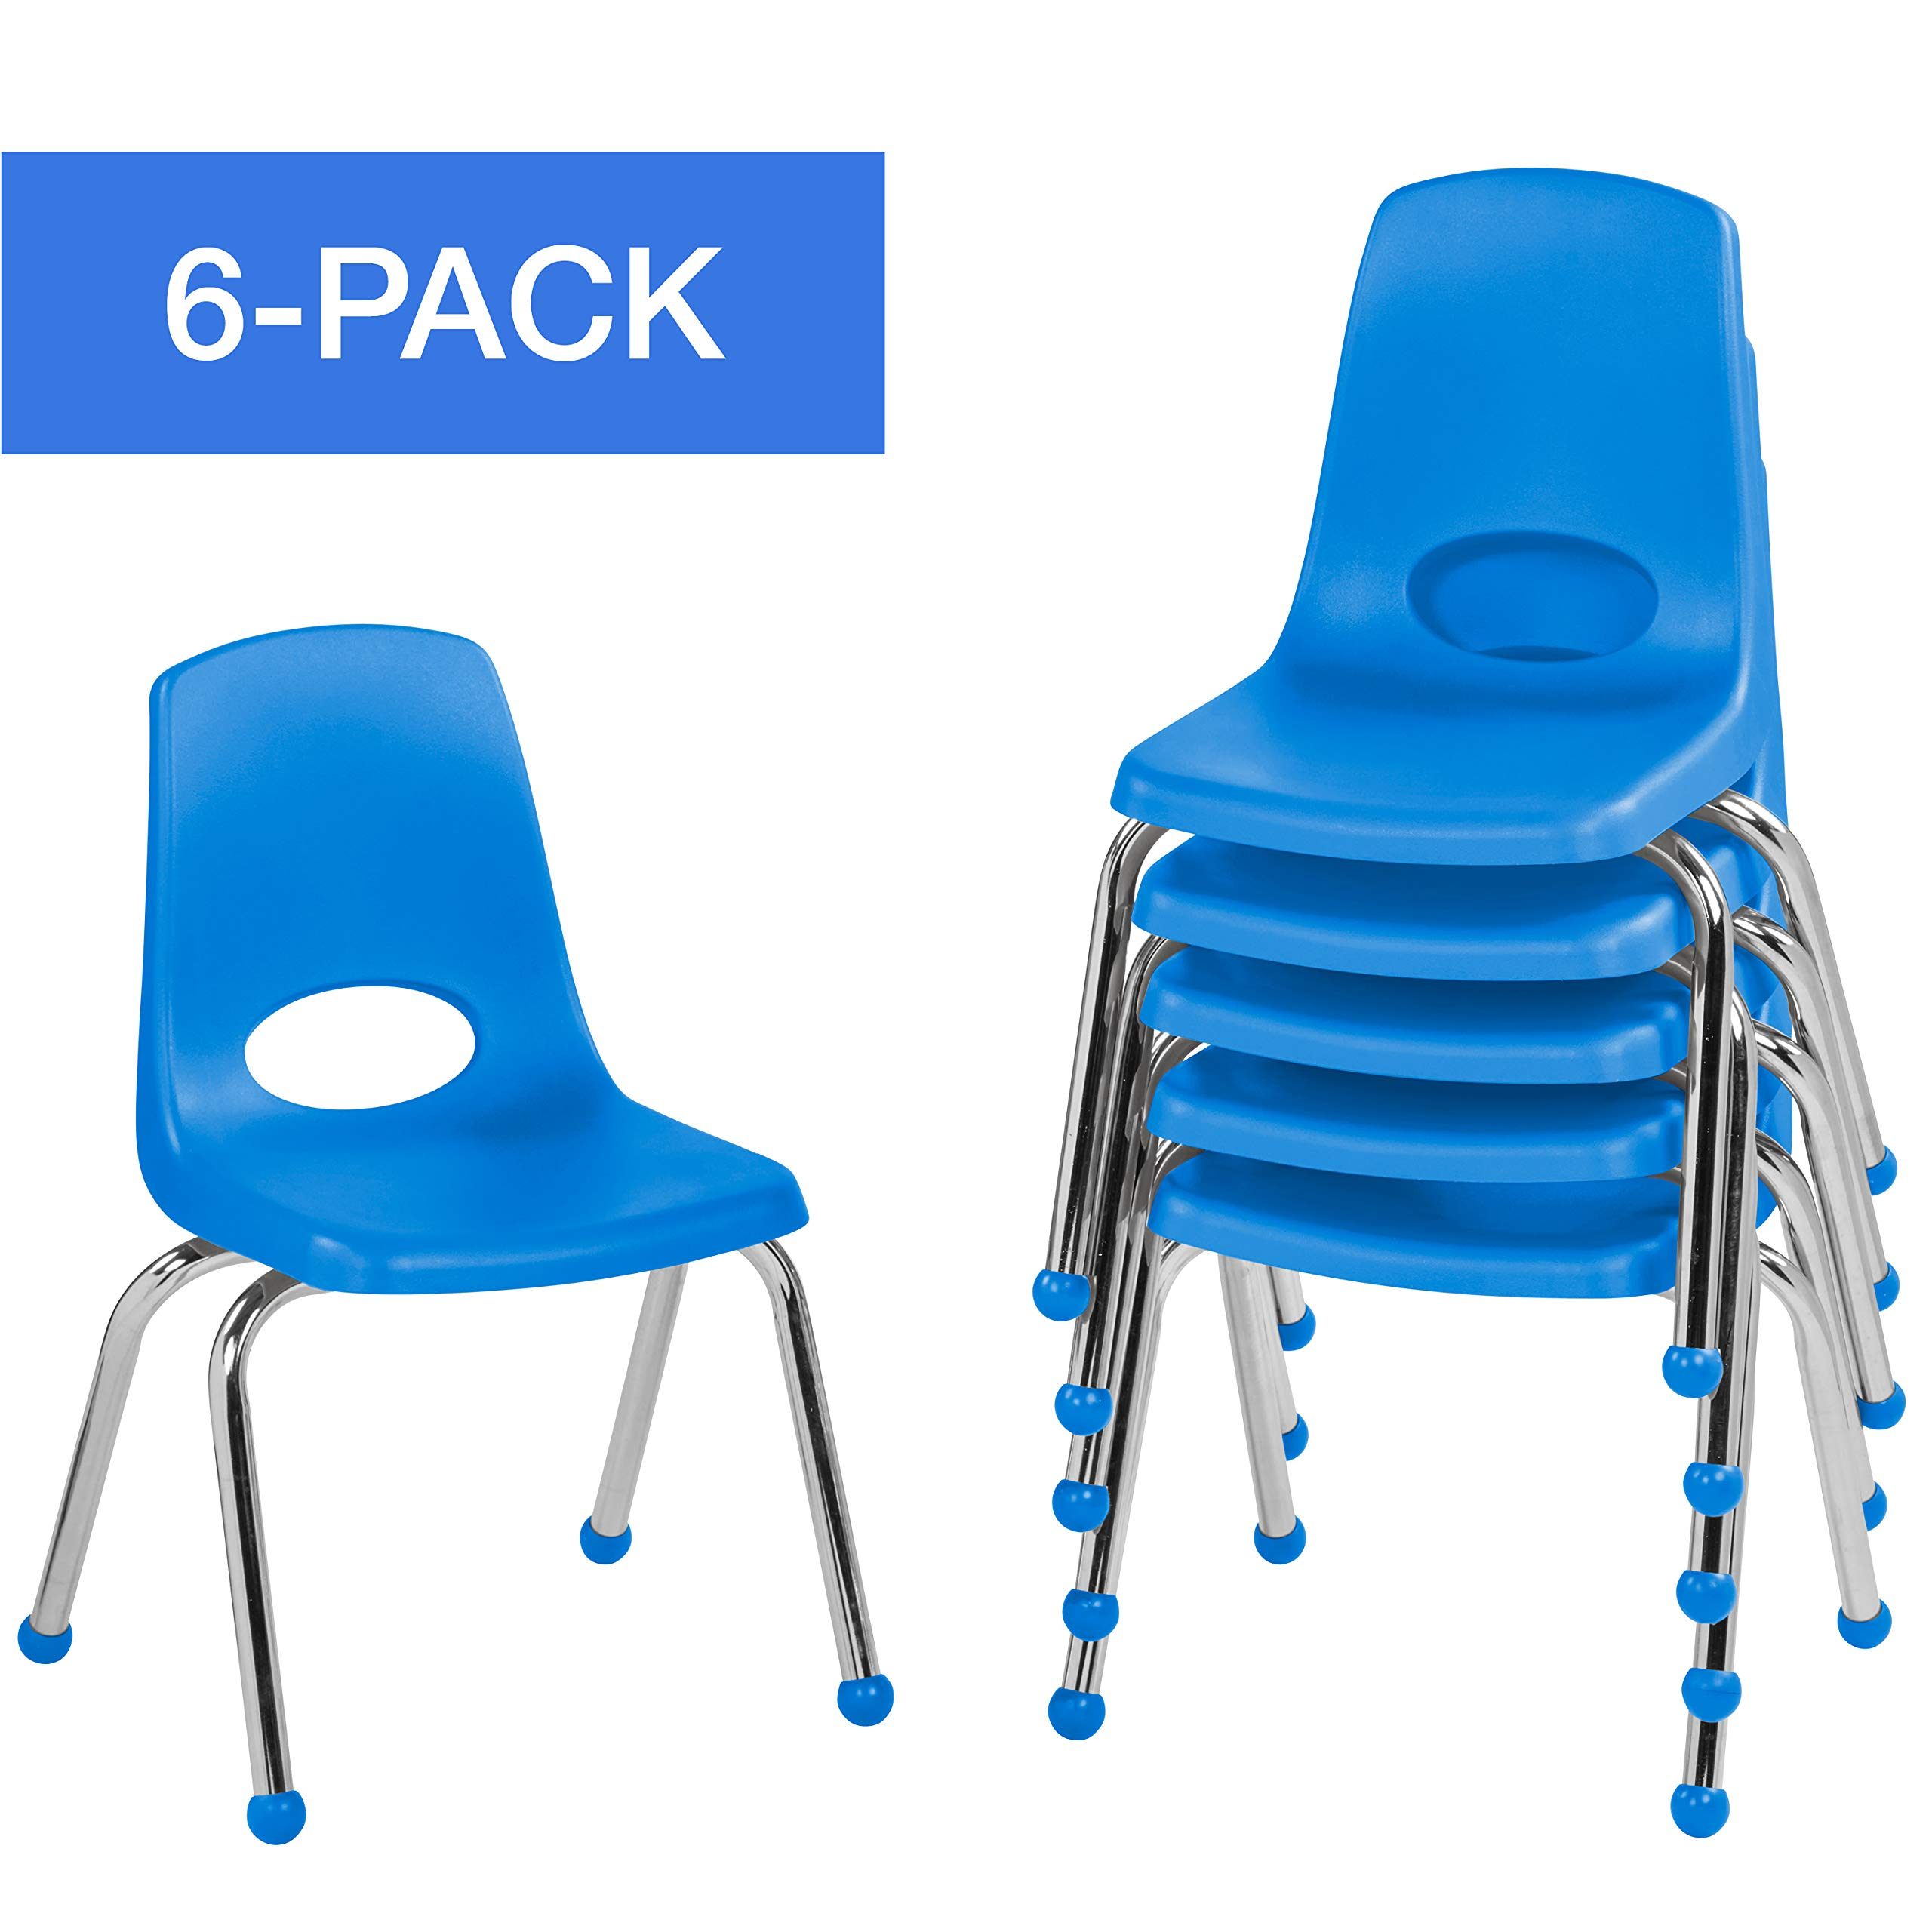 14'' School Stack Chair,Stacking Student Chairs with Chromed Steel Legs and Ball Glides - Blue (6-Pack)